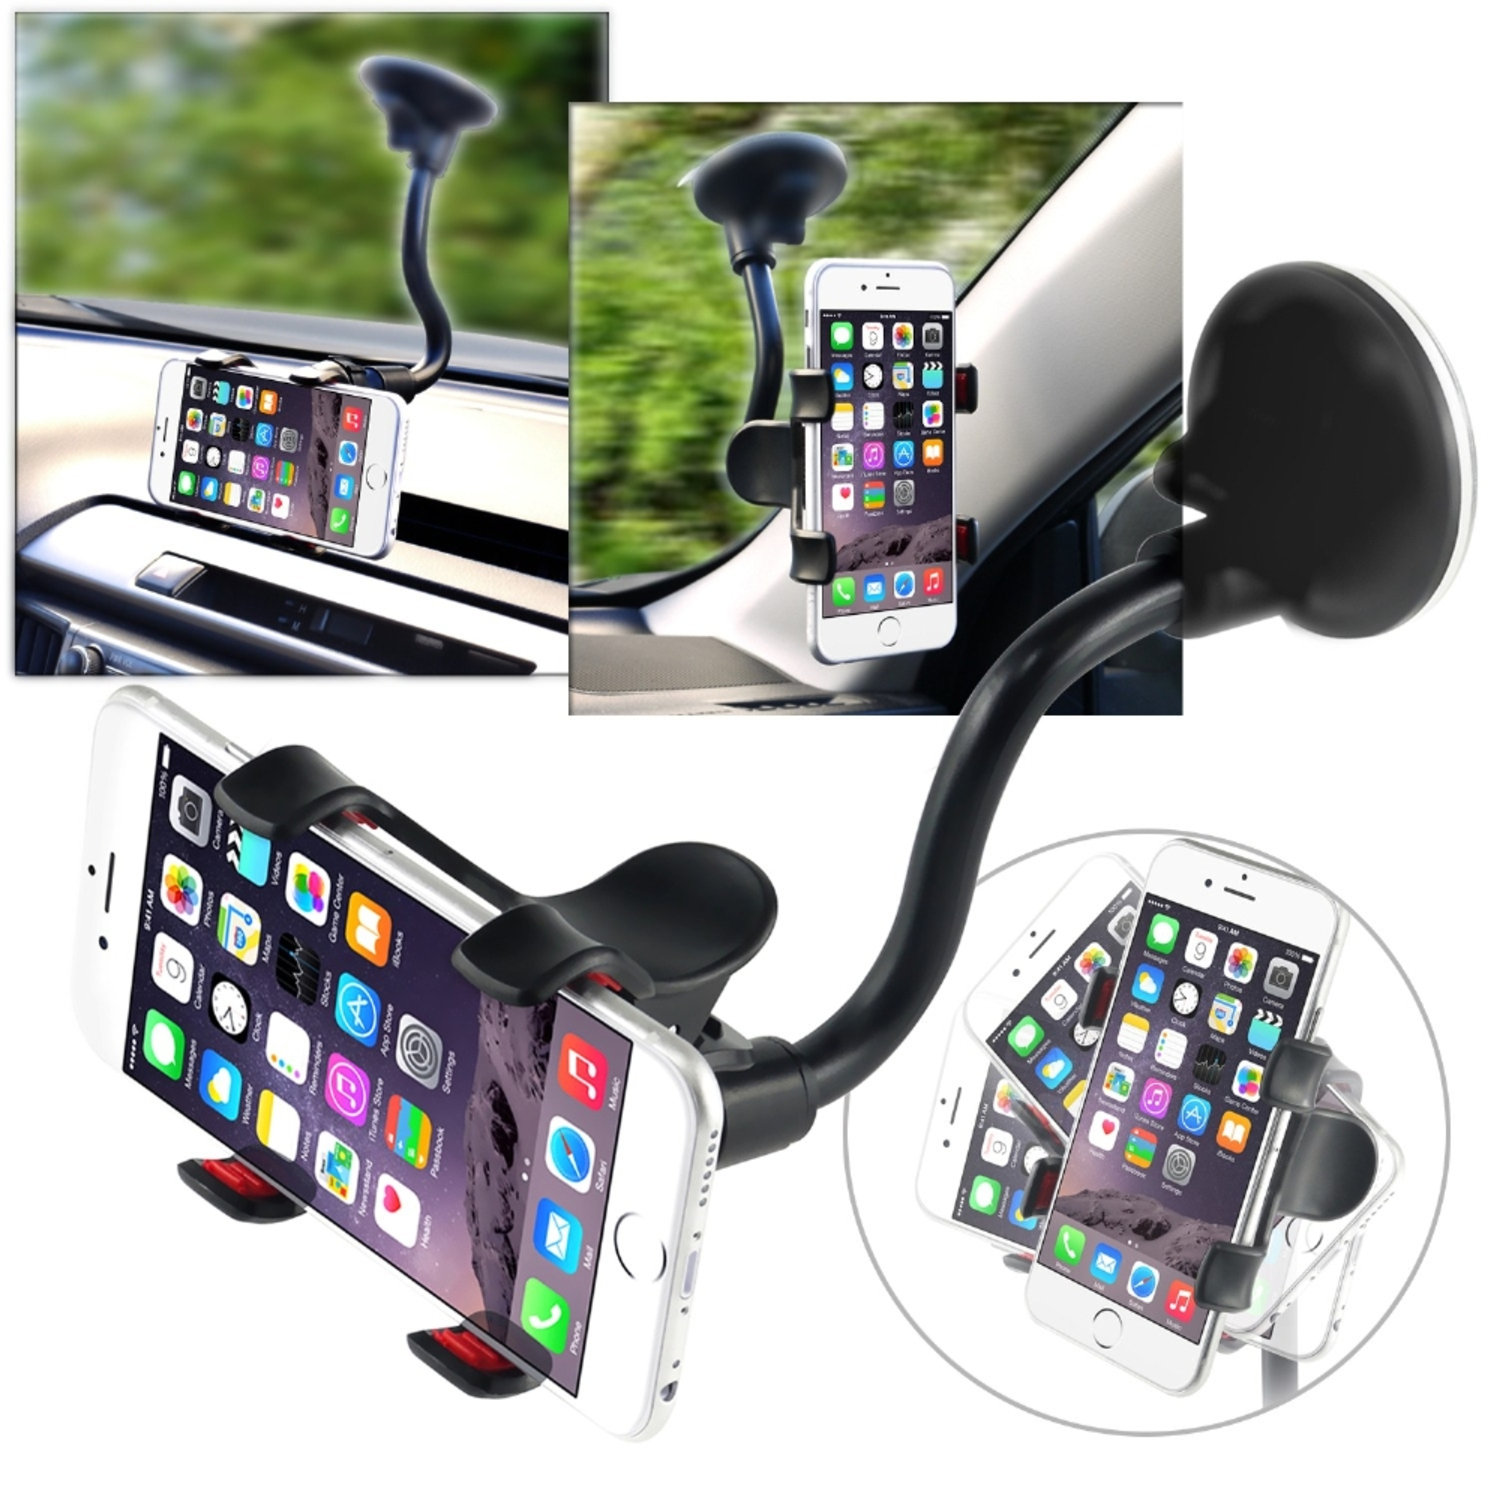 Insten Universal Car Mount Suction Phone Holder For Cell Phone Smartphone iPhone X 8 7 6 6S Plus SE 5S iPod / Samsung Galaxy S8 S7 S6 Edge On5 J7 J3 J1 / LG G6+ G Stylo 3 2 Stylus Tribute HD K7 G6 V30